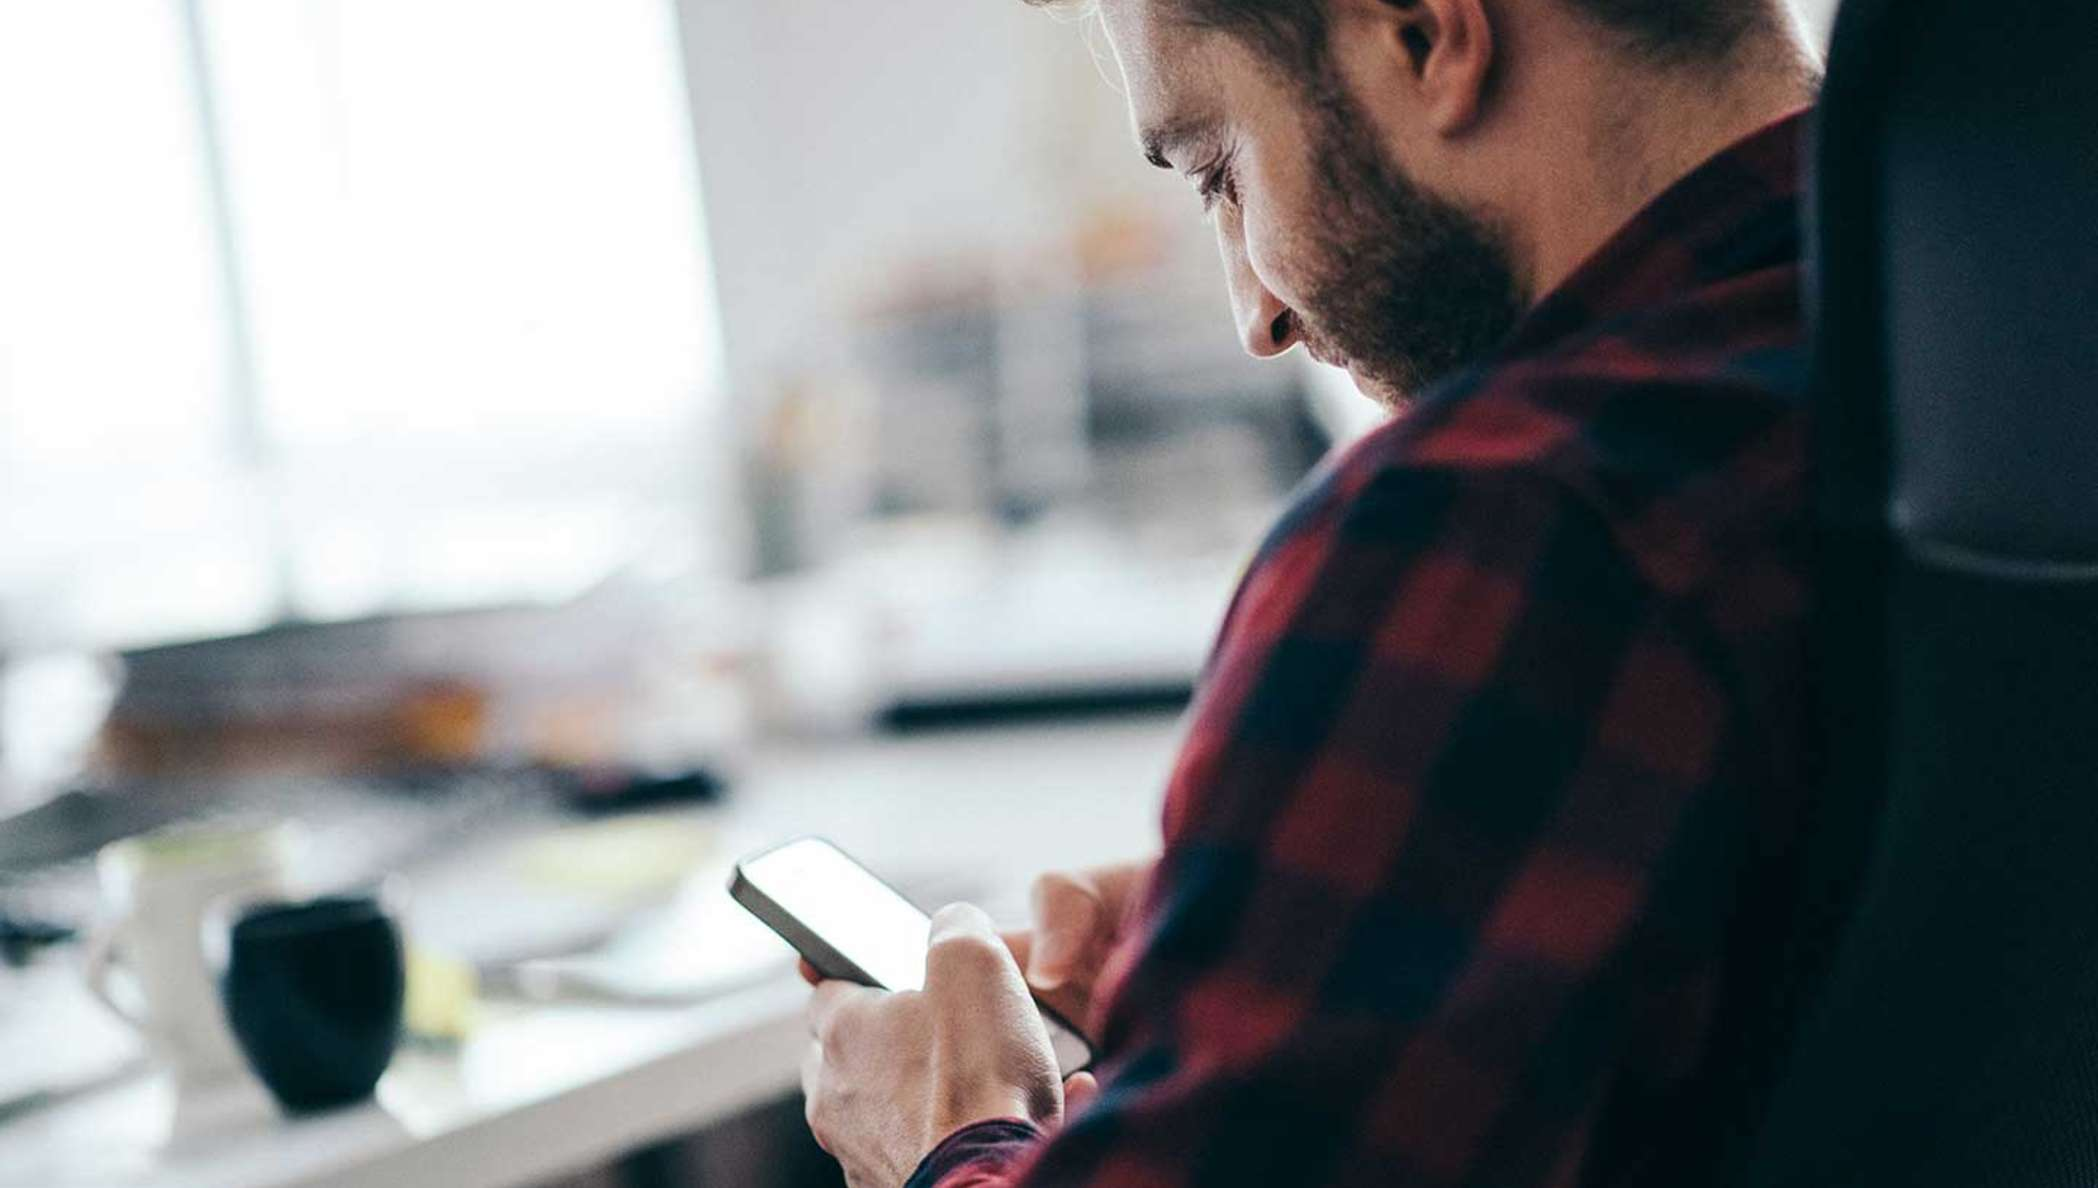 A bearded man in a flannel shirt checks the status of a document out for signature on his mobile phone